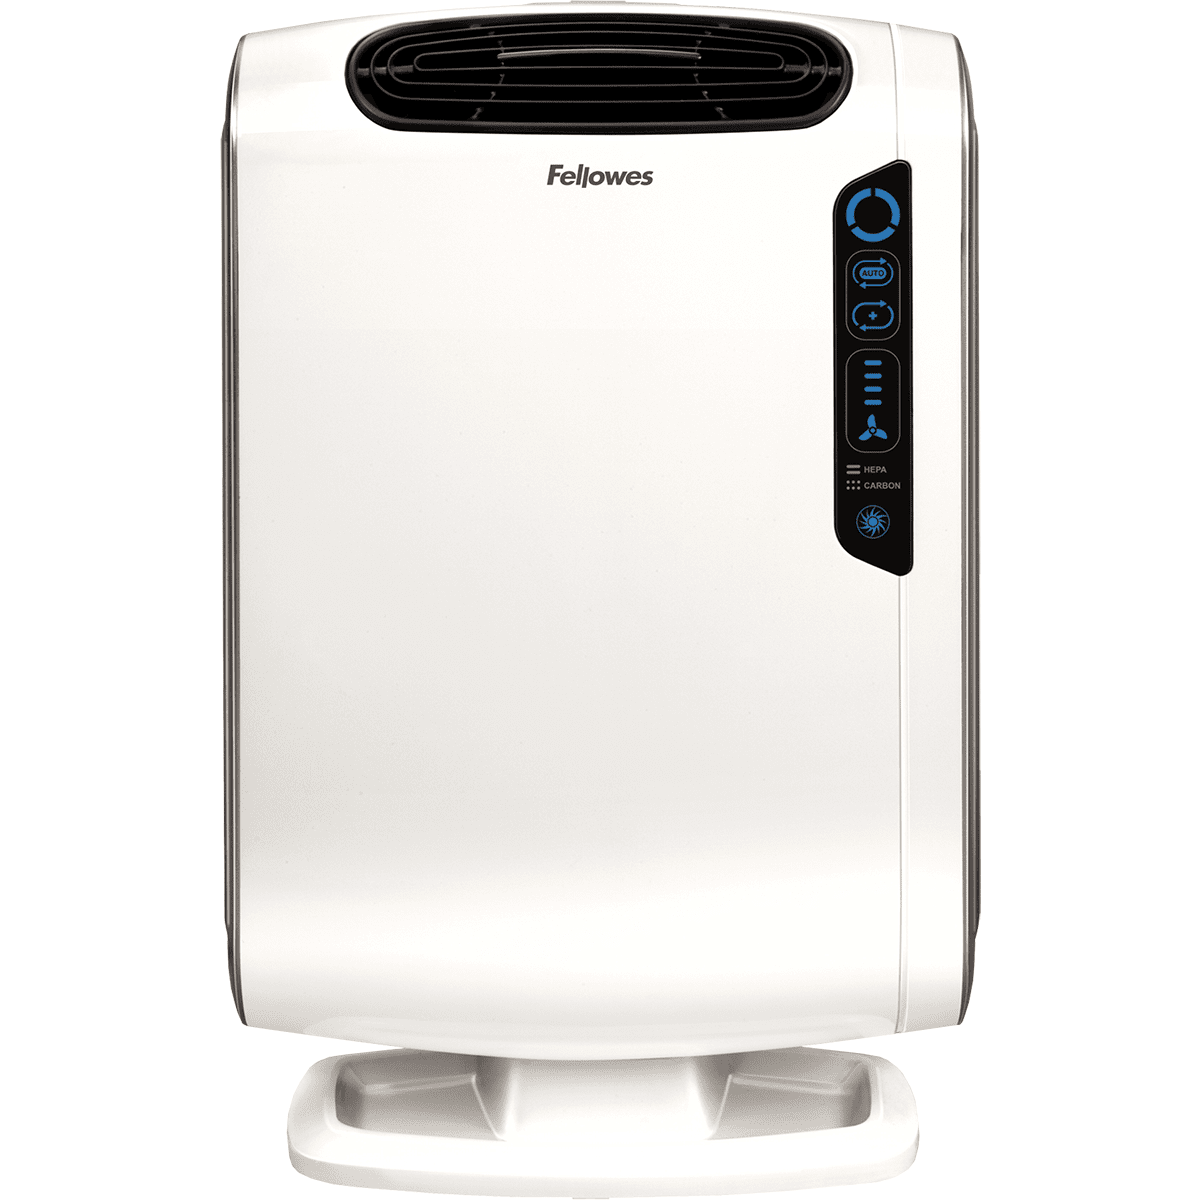 Image of Aeramax Dx55 Air Purifier